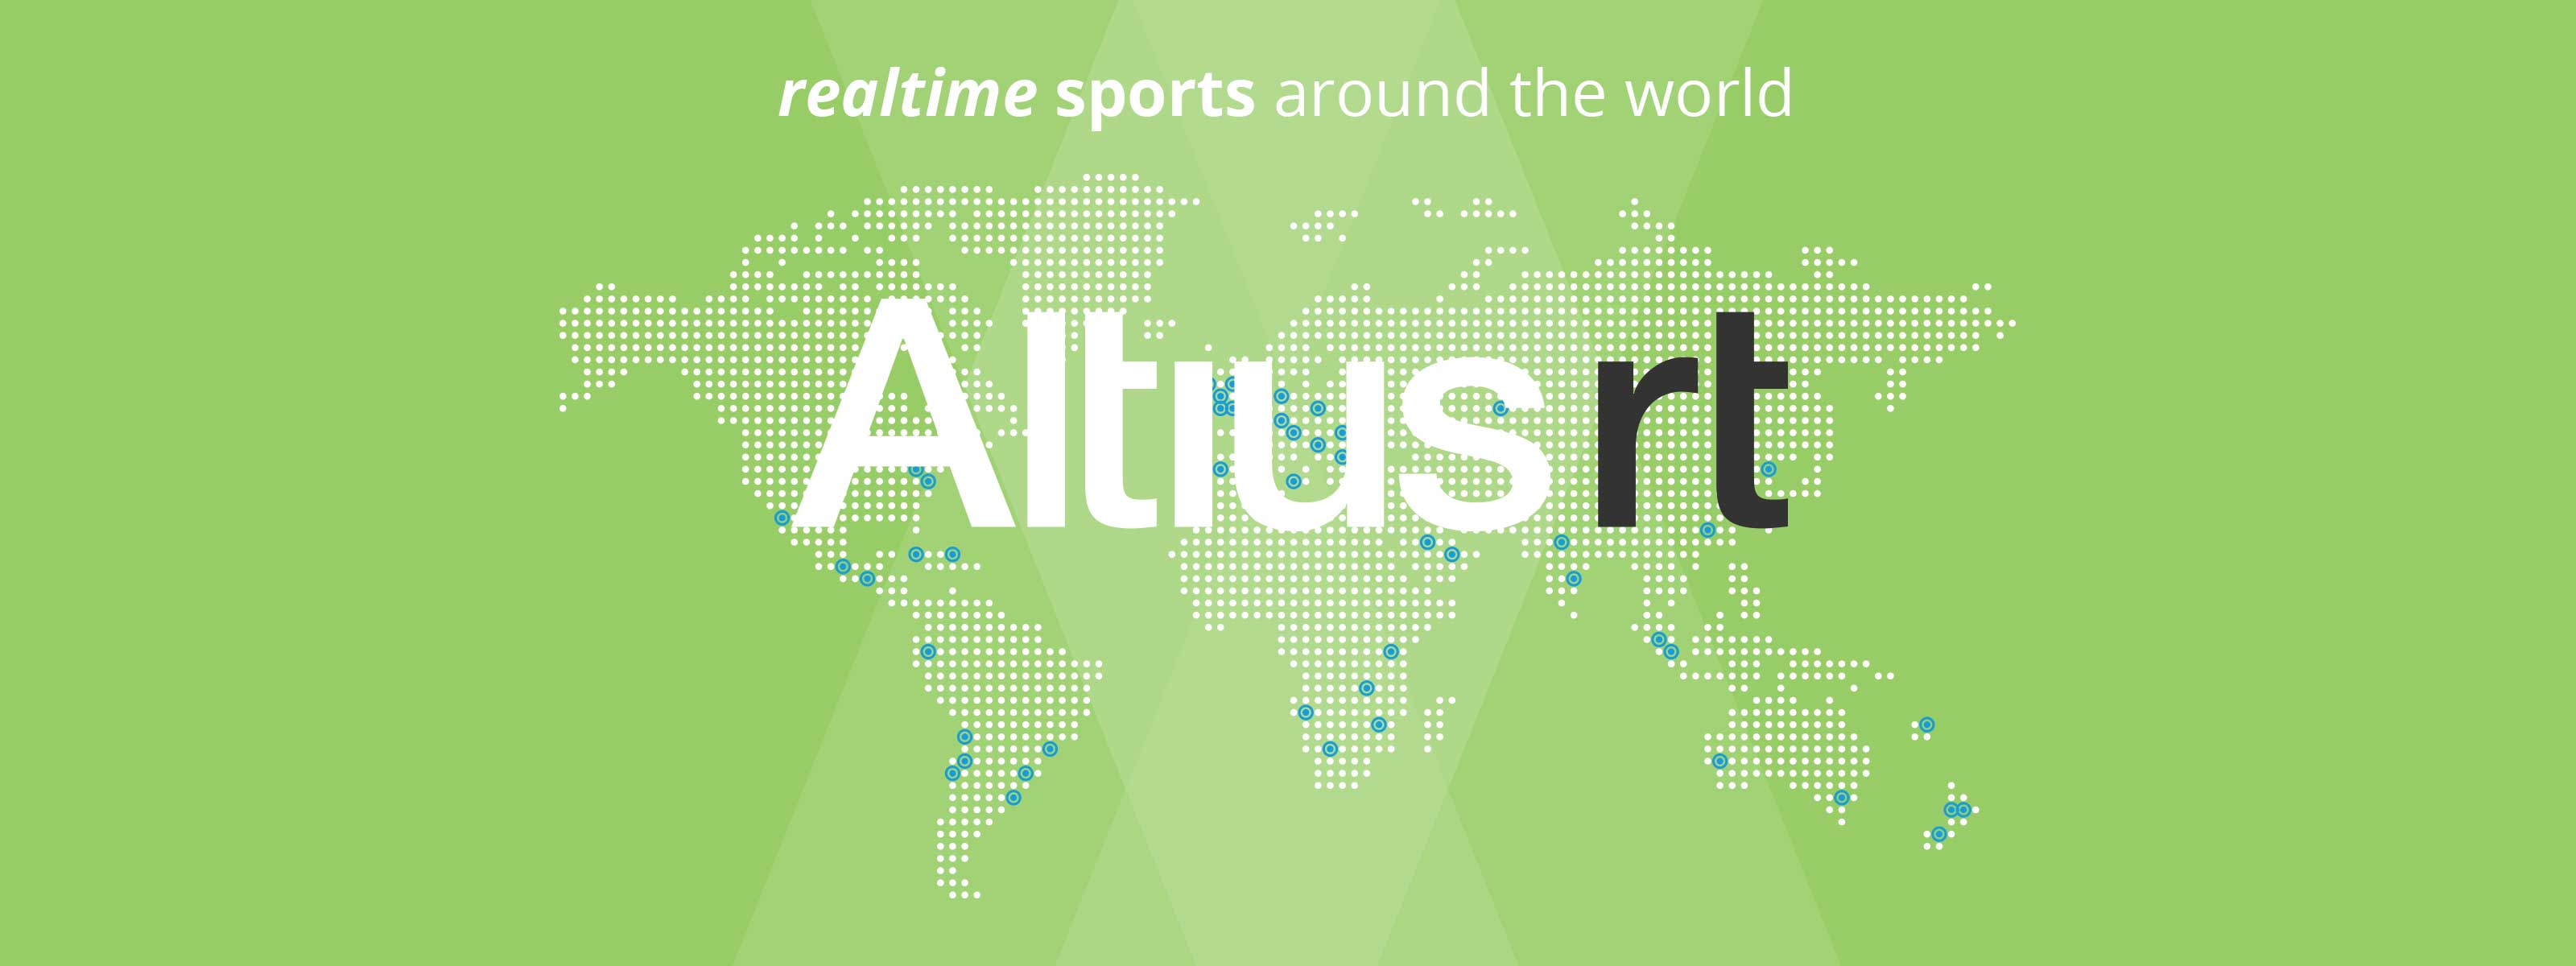 realtime sports around the world